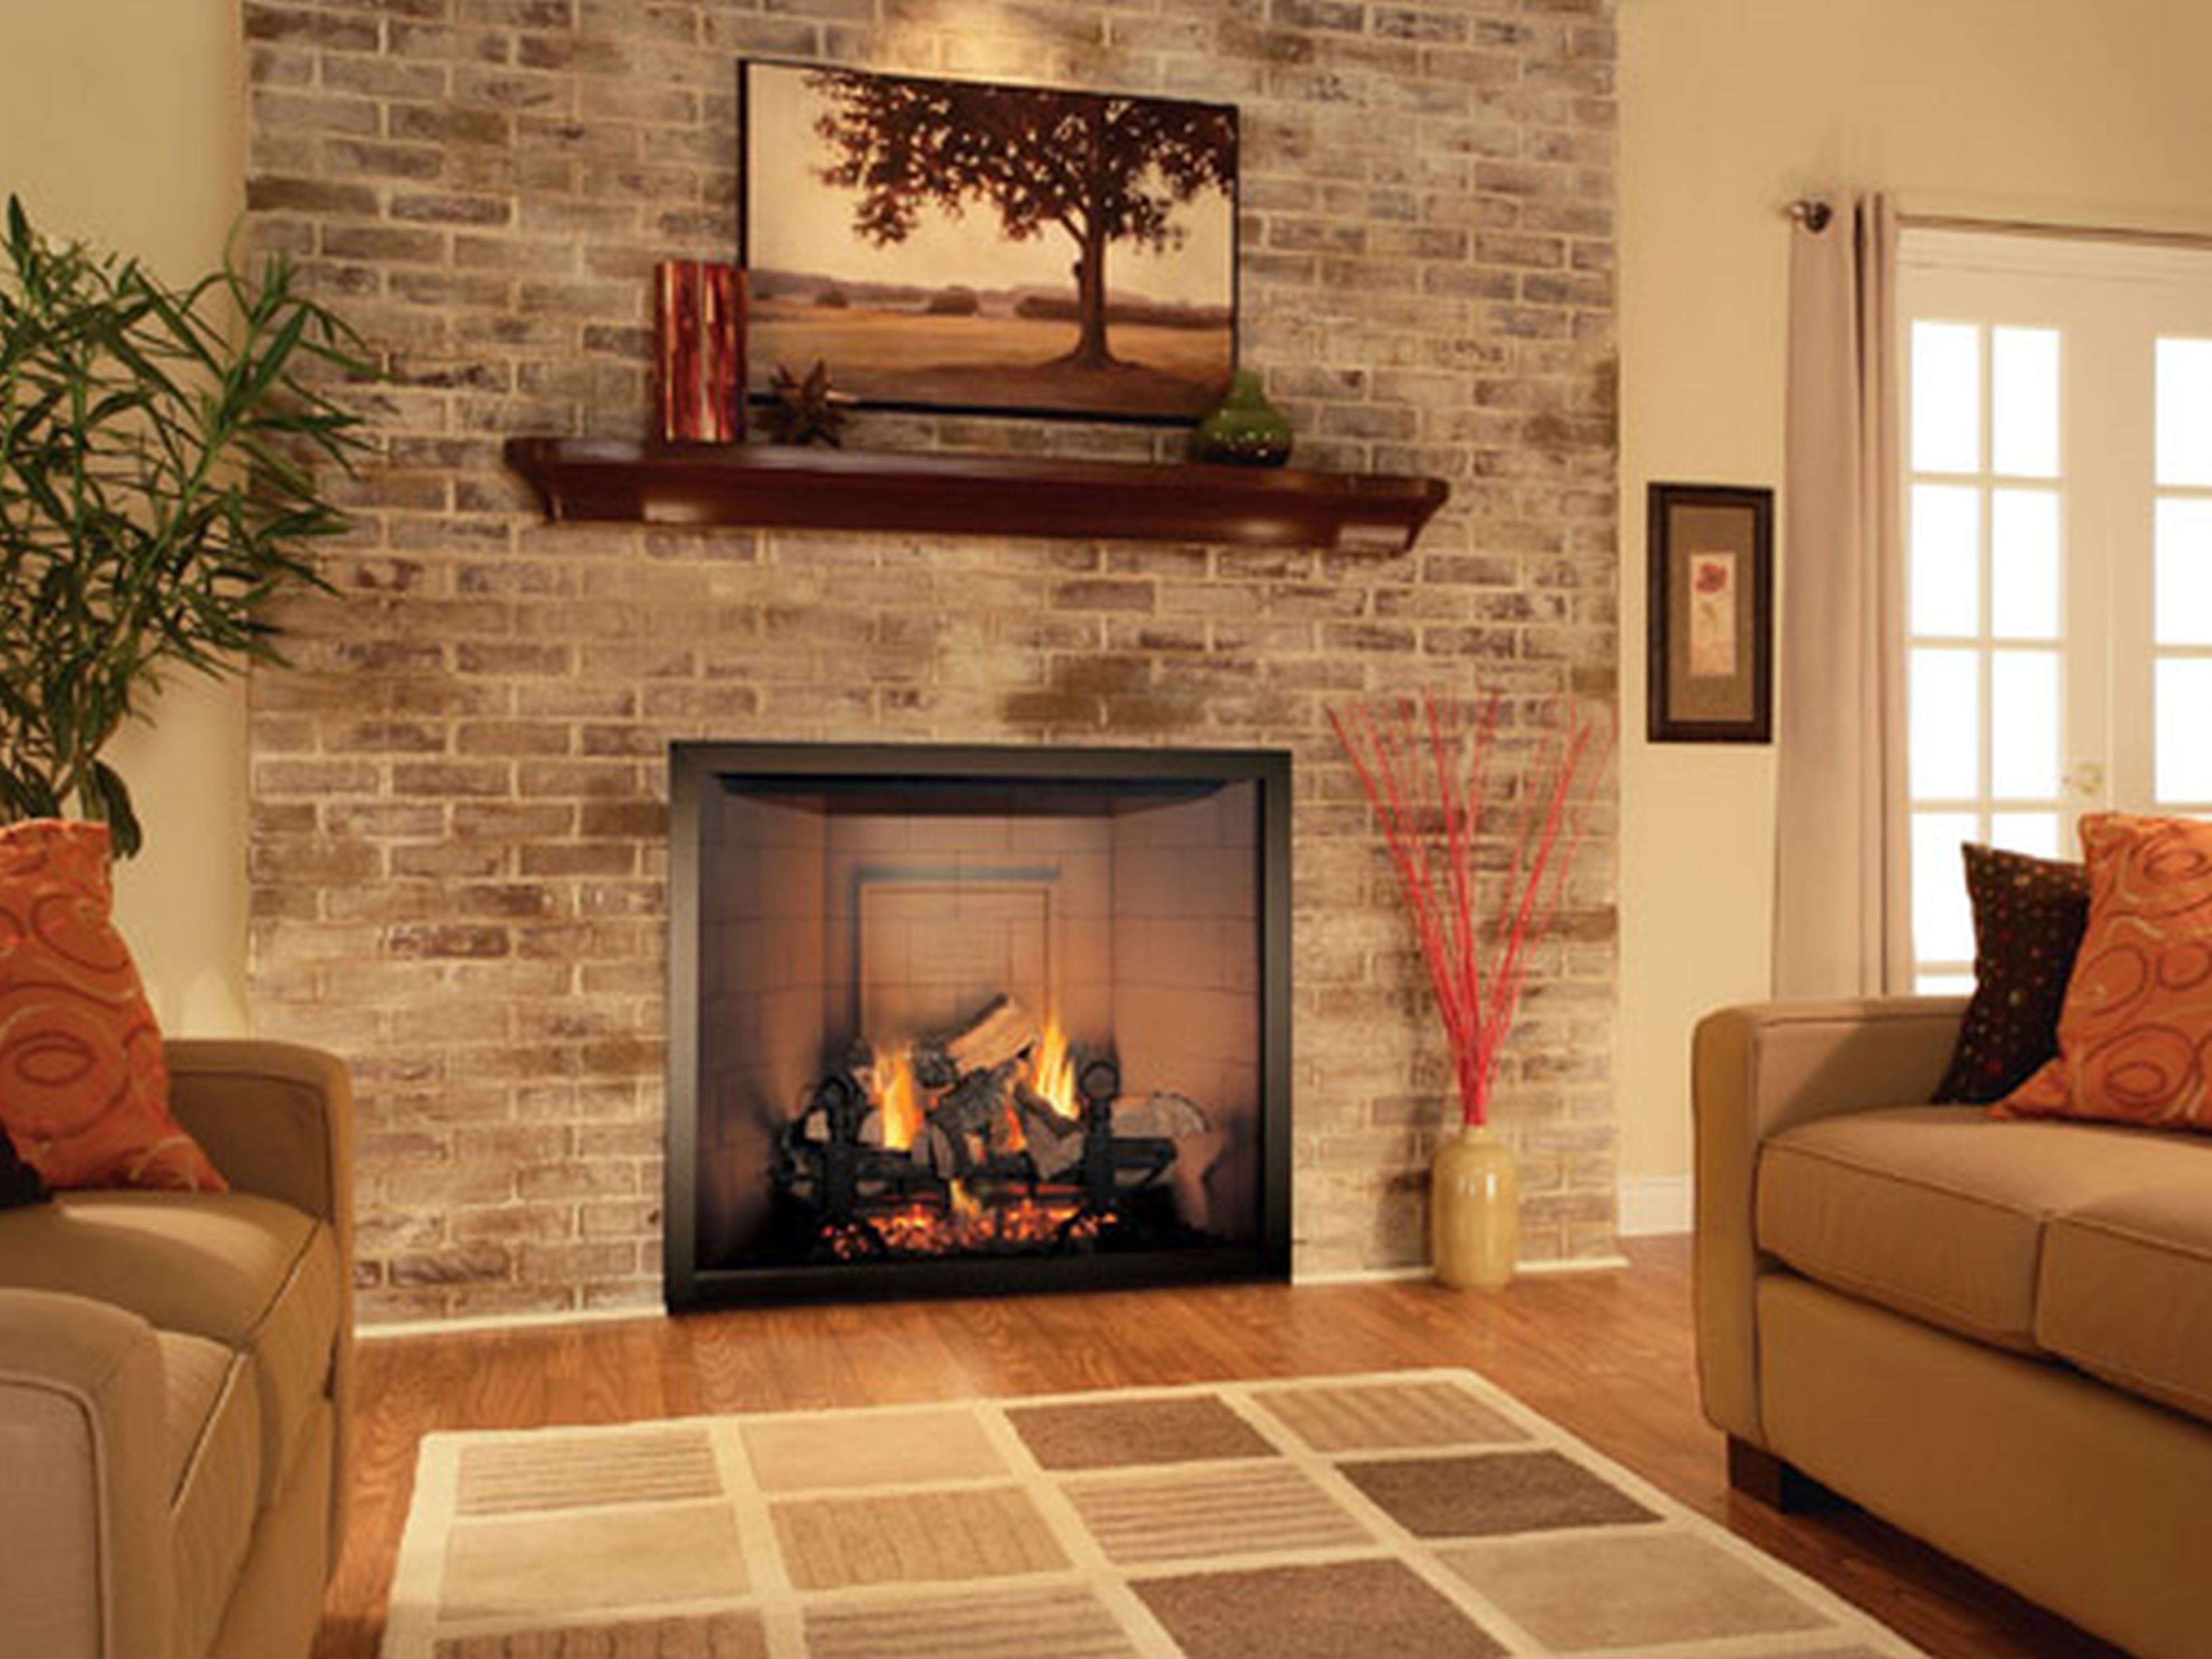 Small Room Gas Fireplace Gas Fireplace For Small Living Room